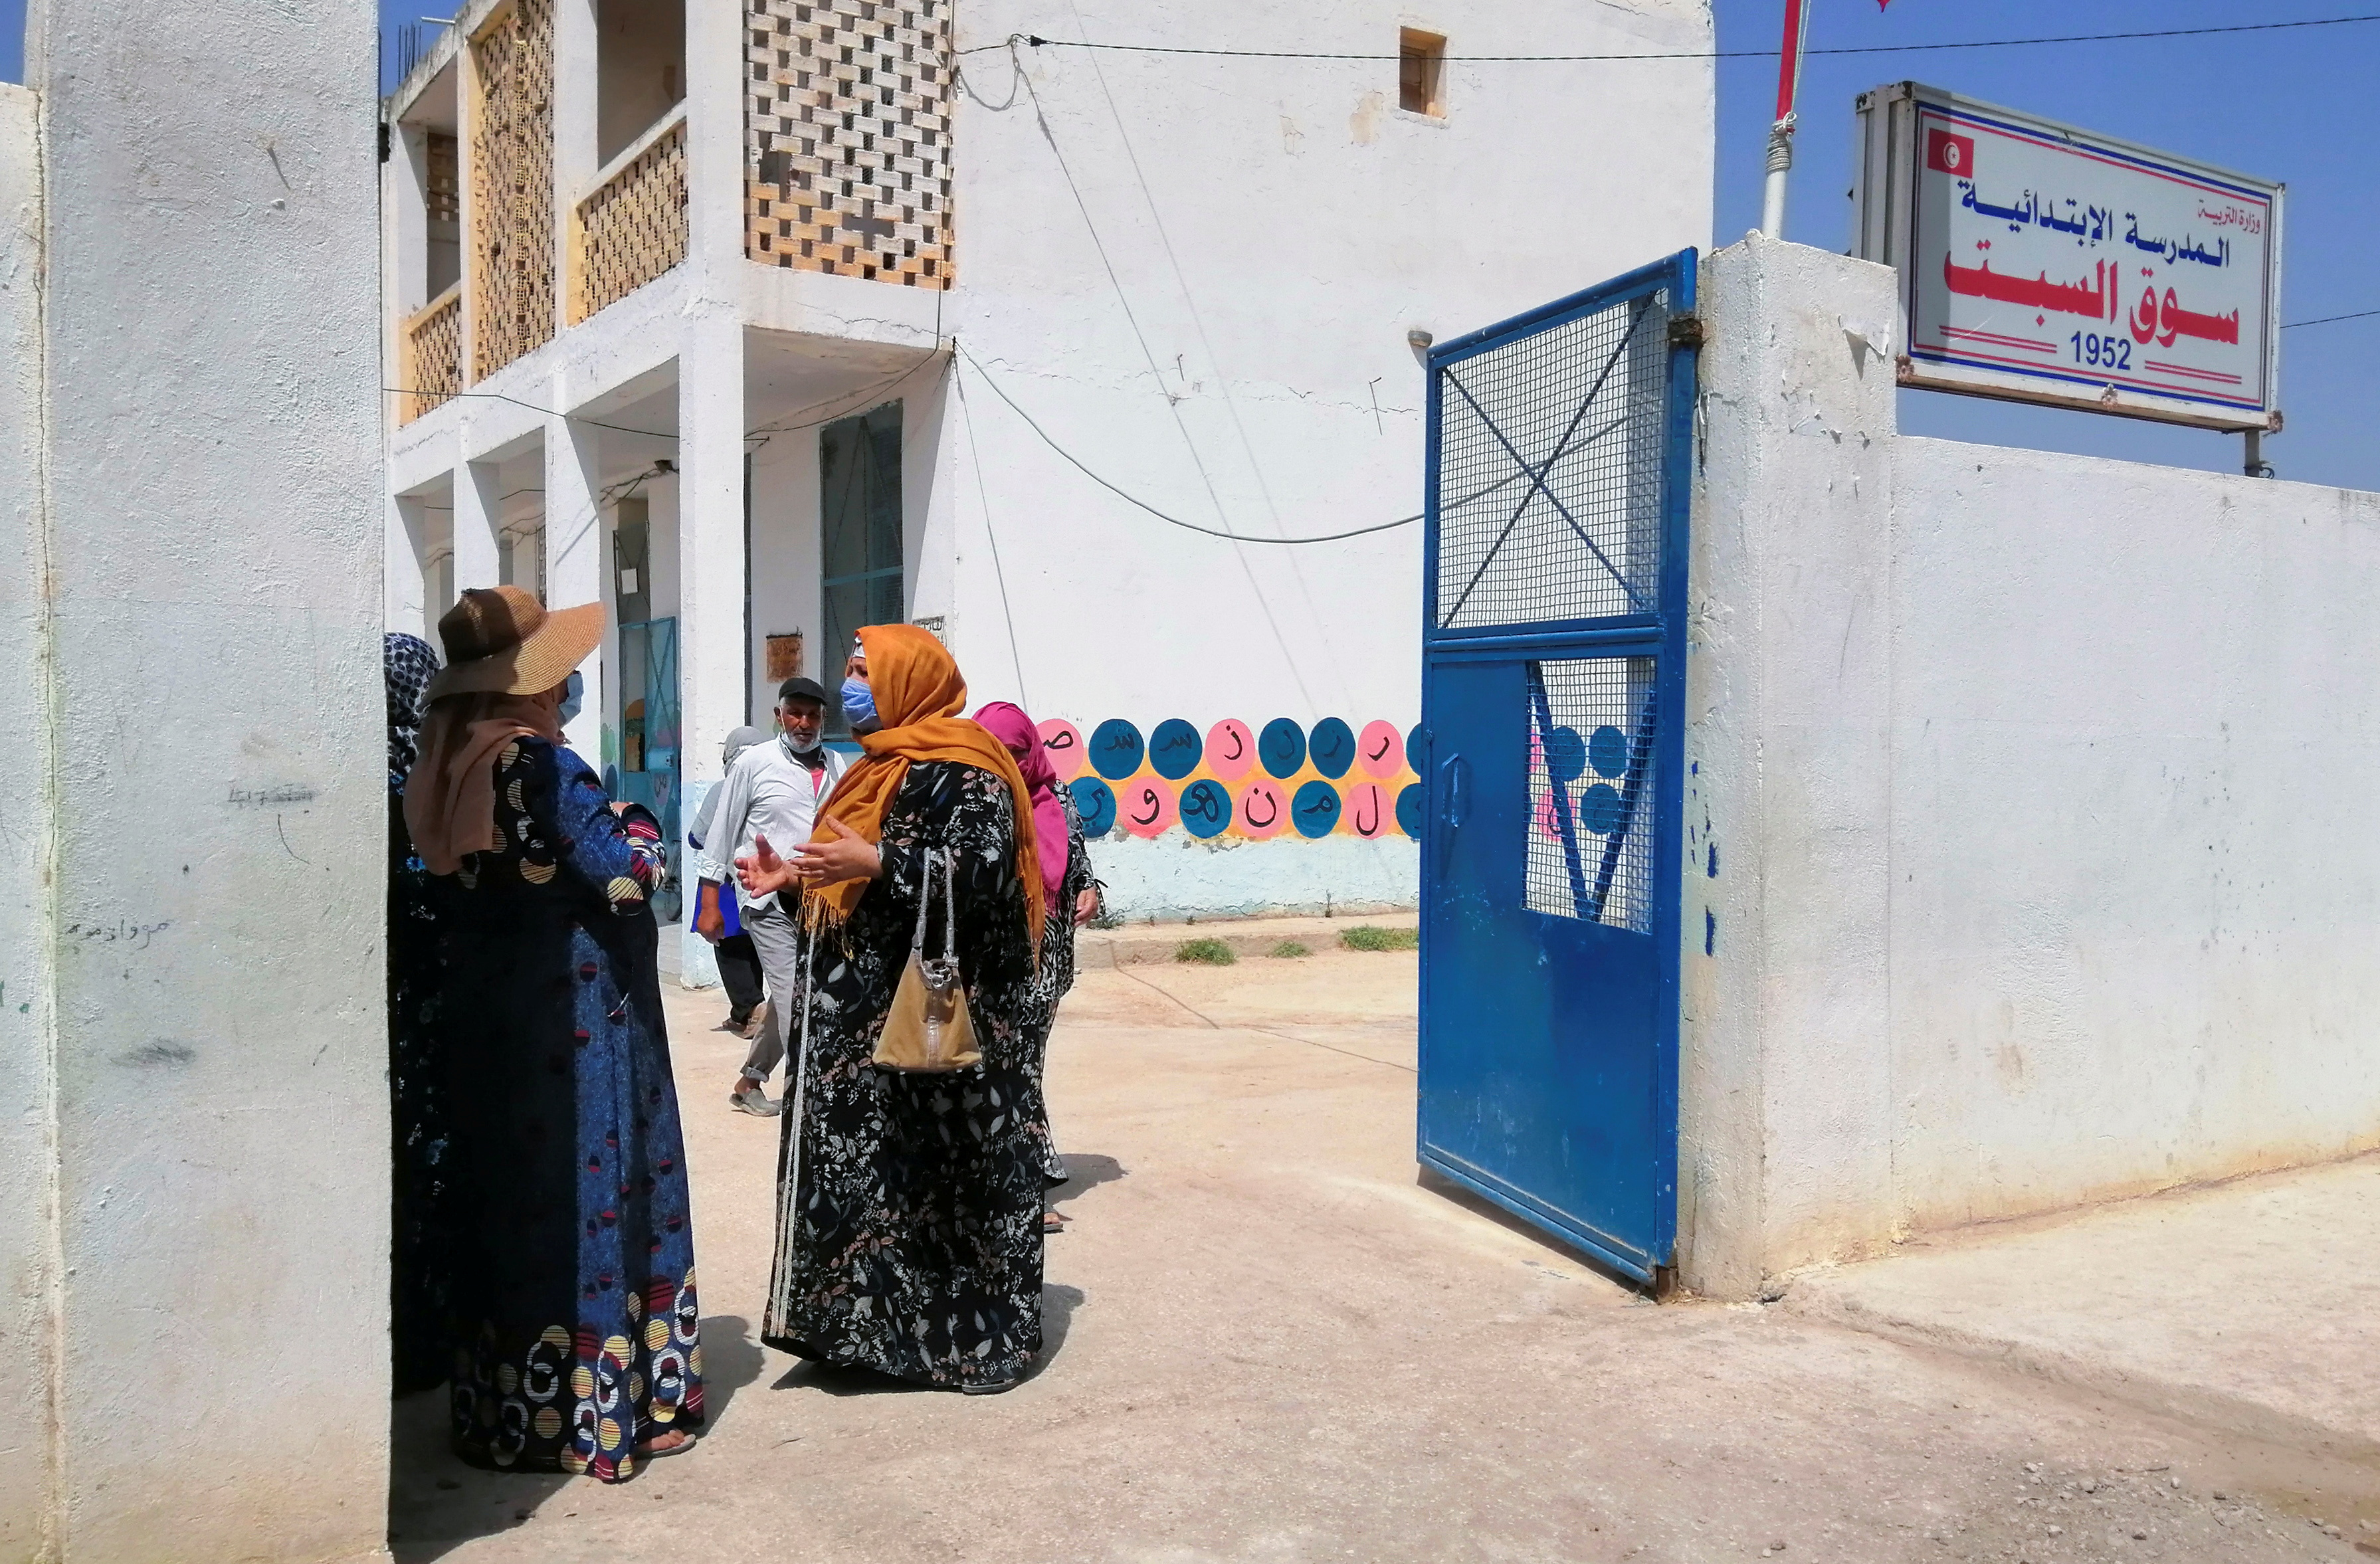 People stand in a school during a vaccination campaign against coronavirus disease (COVID-19) managed by the army, in Jendouba, west of Tunis, Tunisia  July 30, 2021. Picture taken July 30, 2021. REUTERS/Jihed Abidellaoui